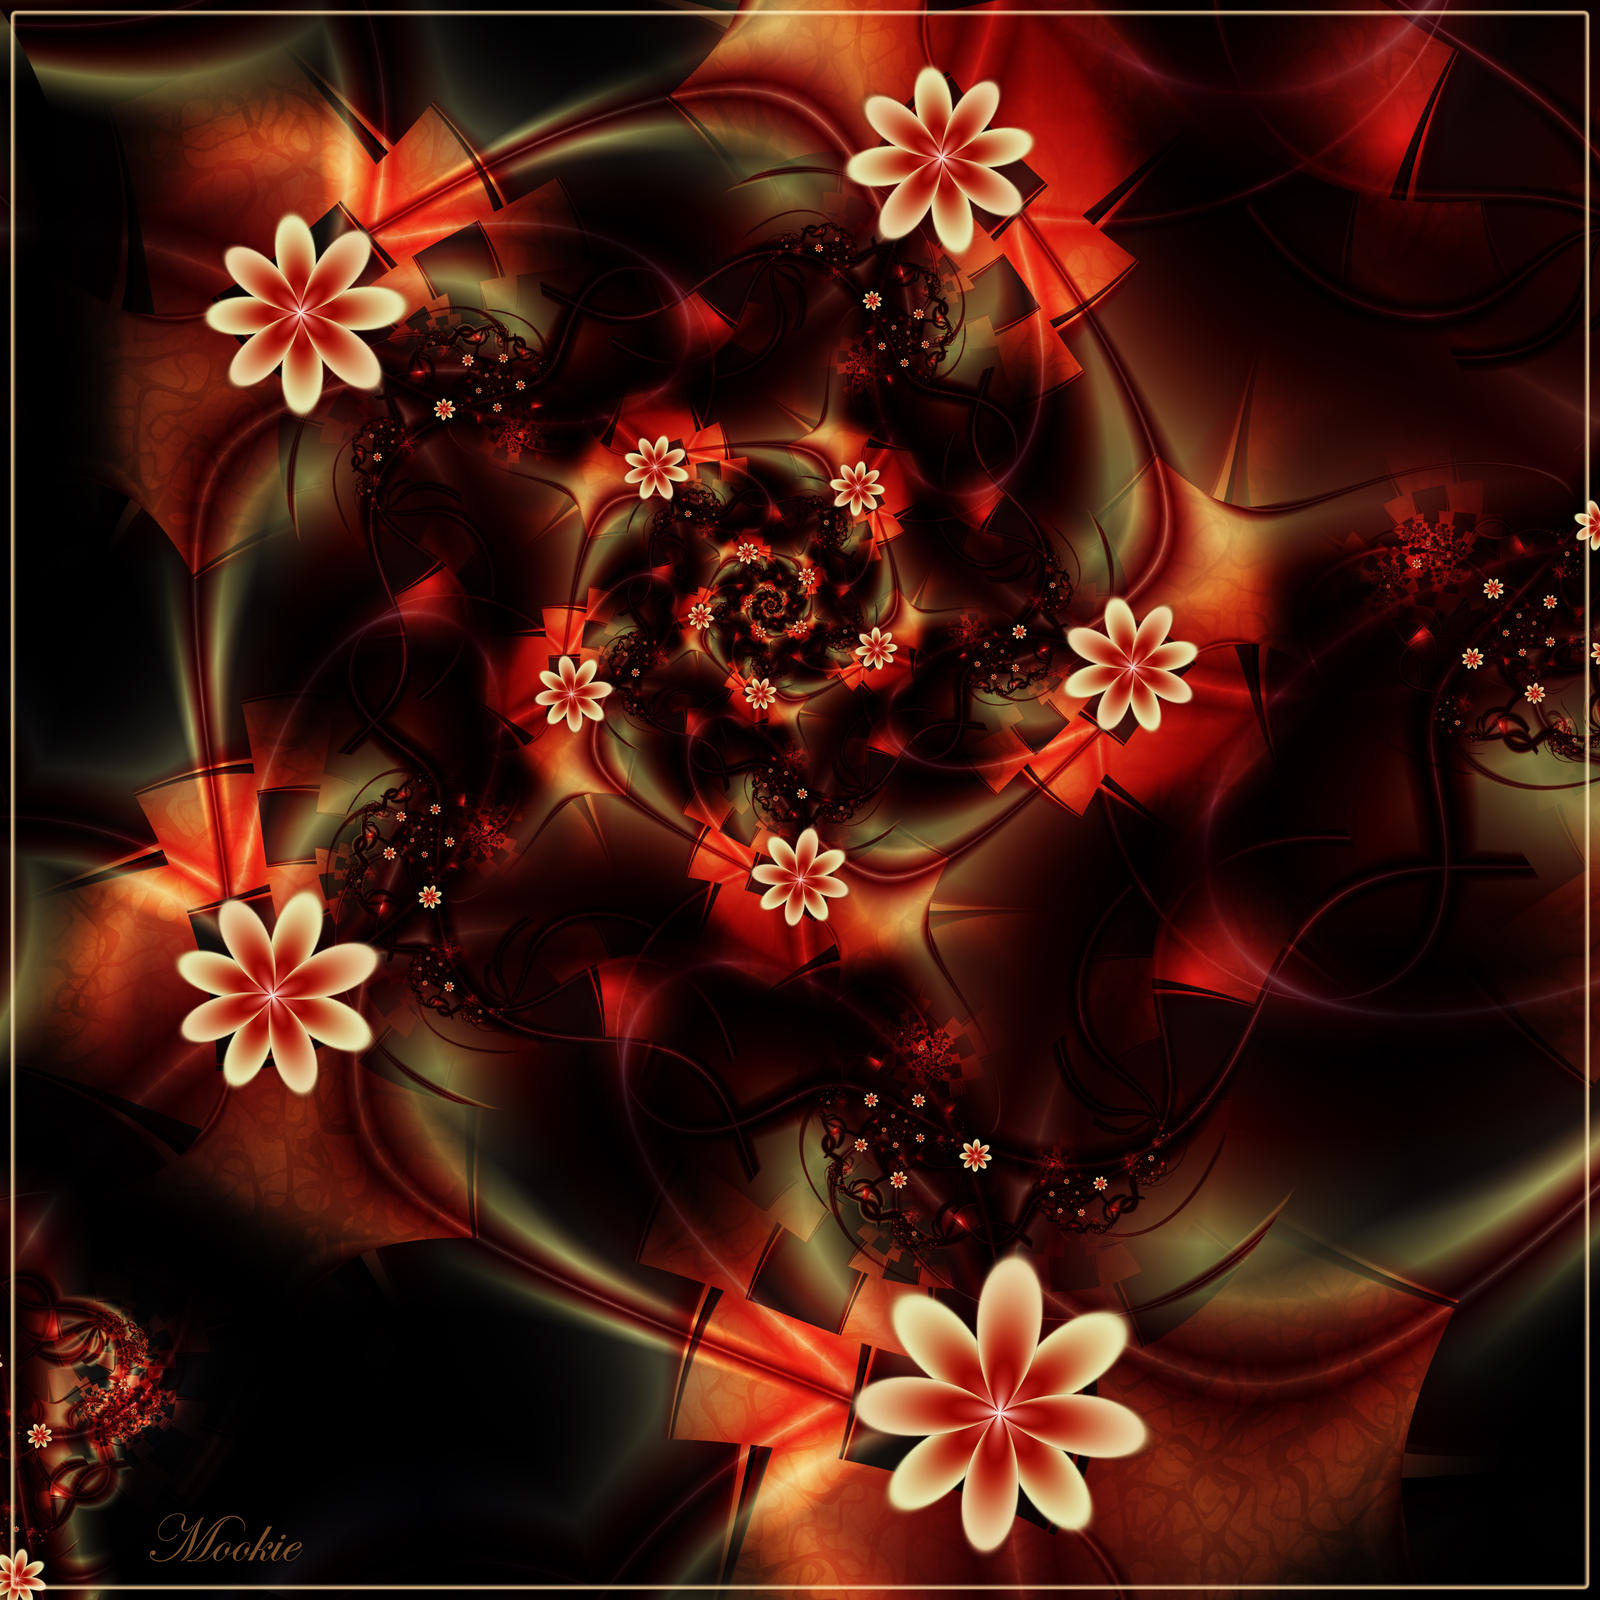 Hot House Flowers by Mookiezoolook on deviantART